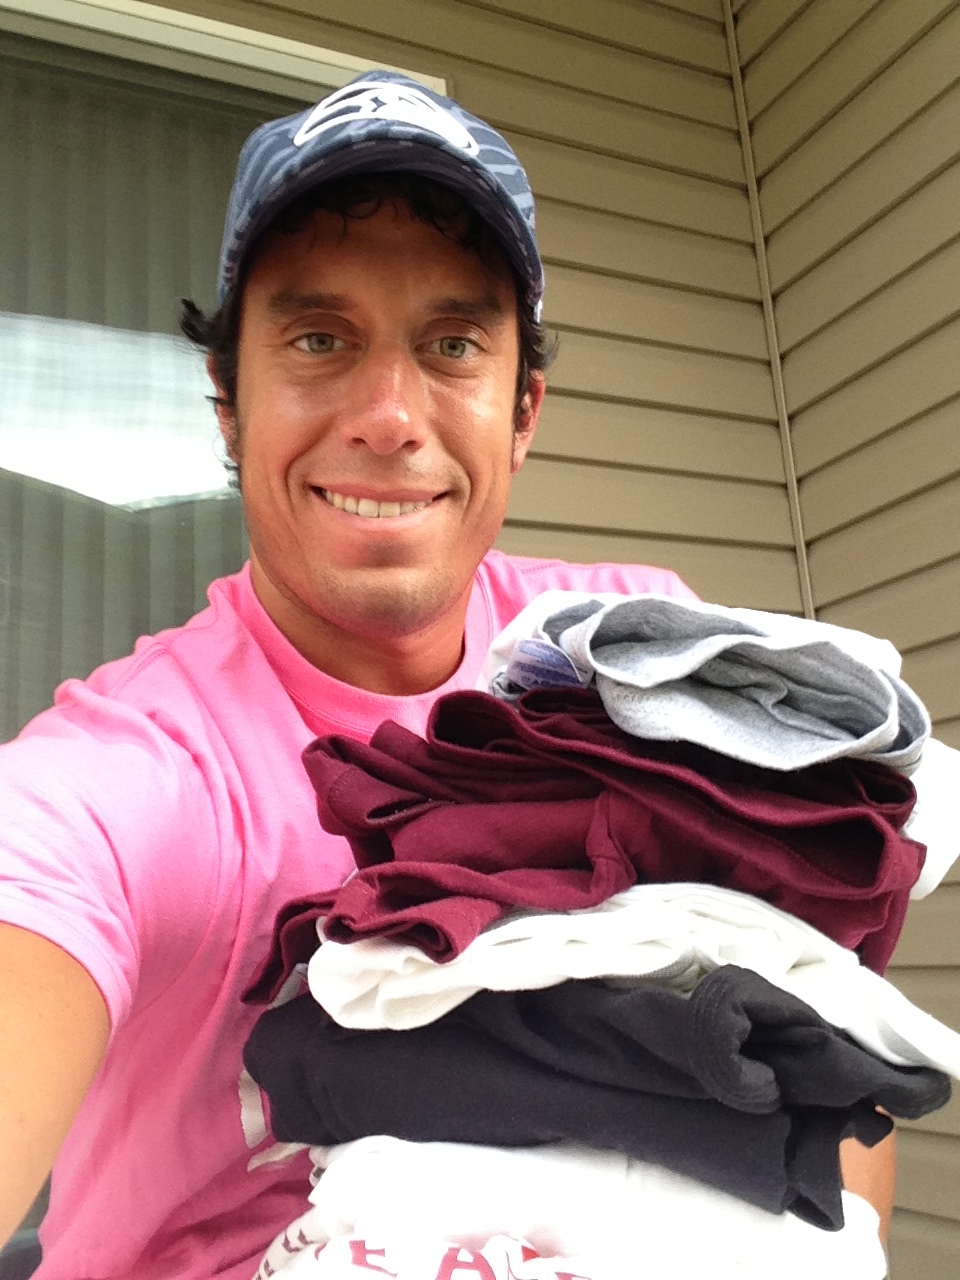 Me with a stack of t-shirts that I own from work. I am wearing a Play 4 Kay shirt in this photo.